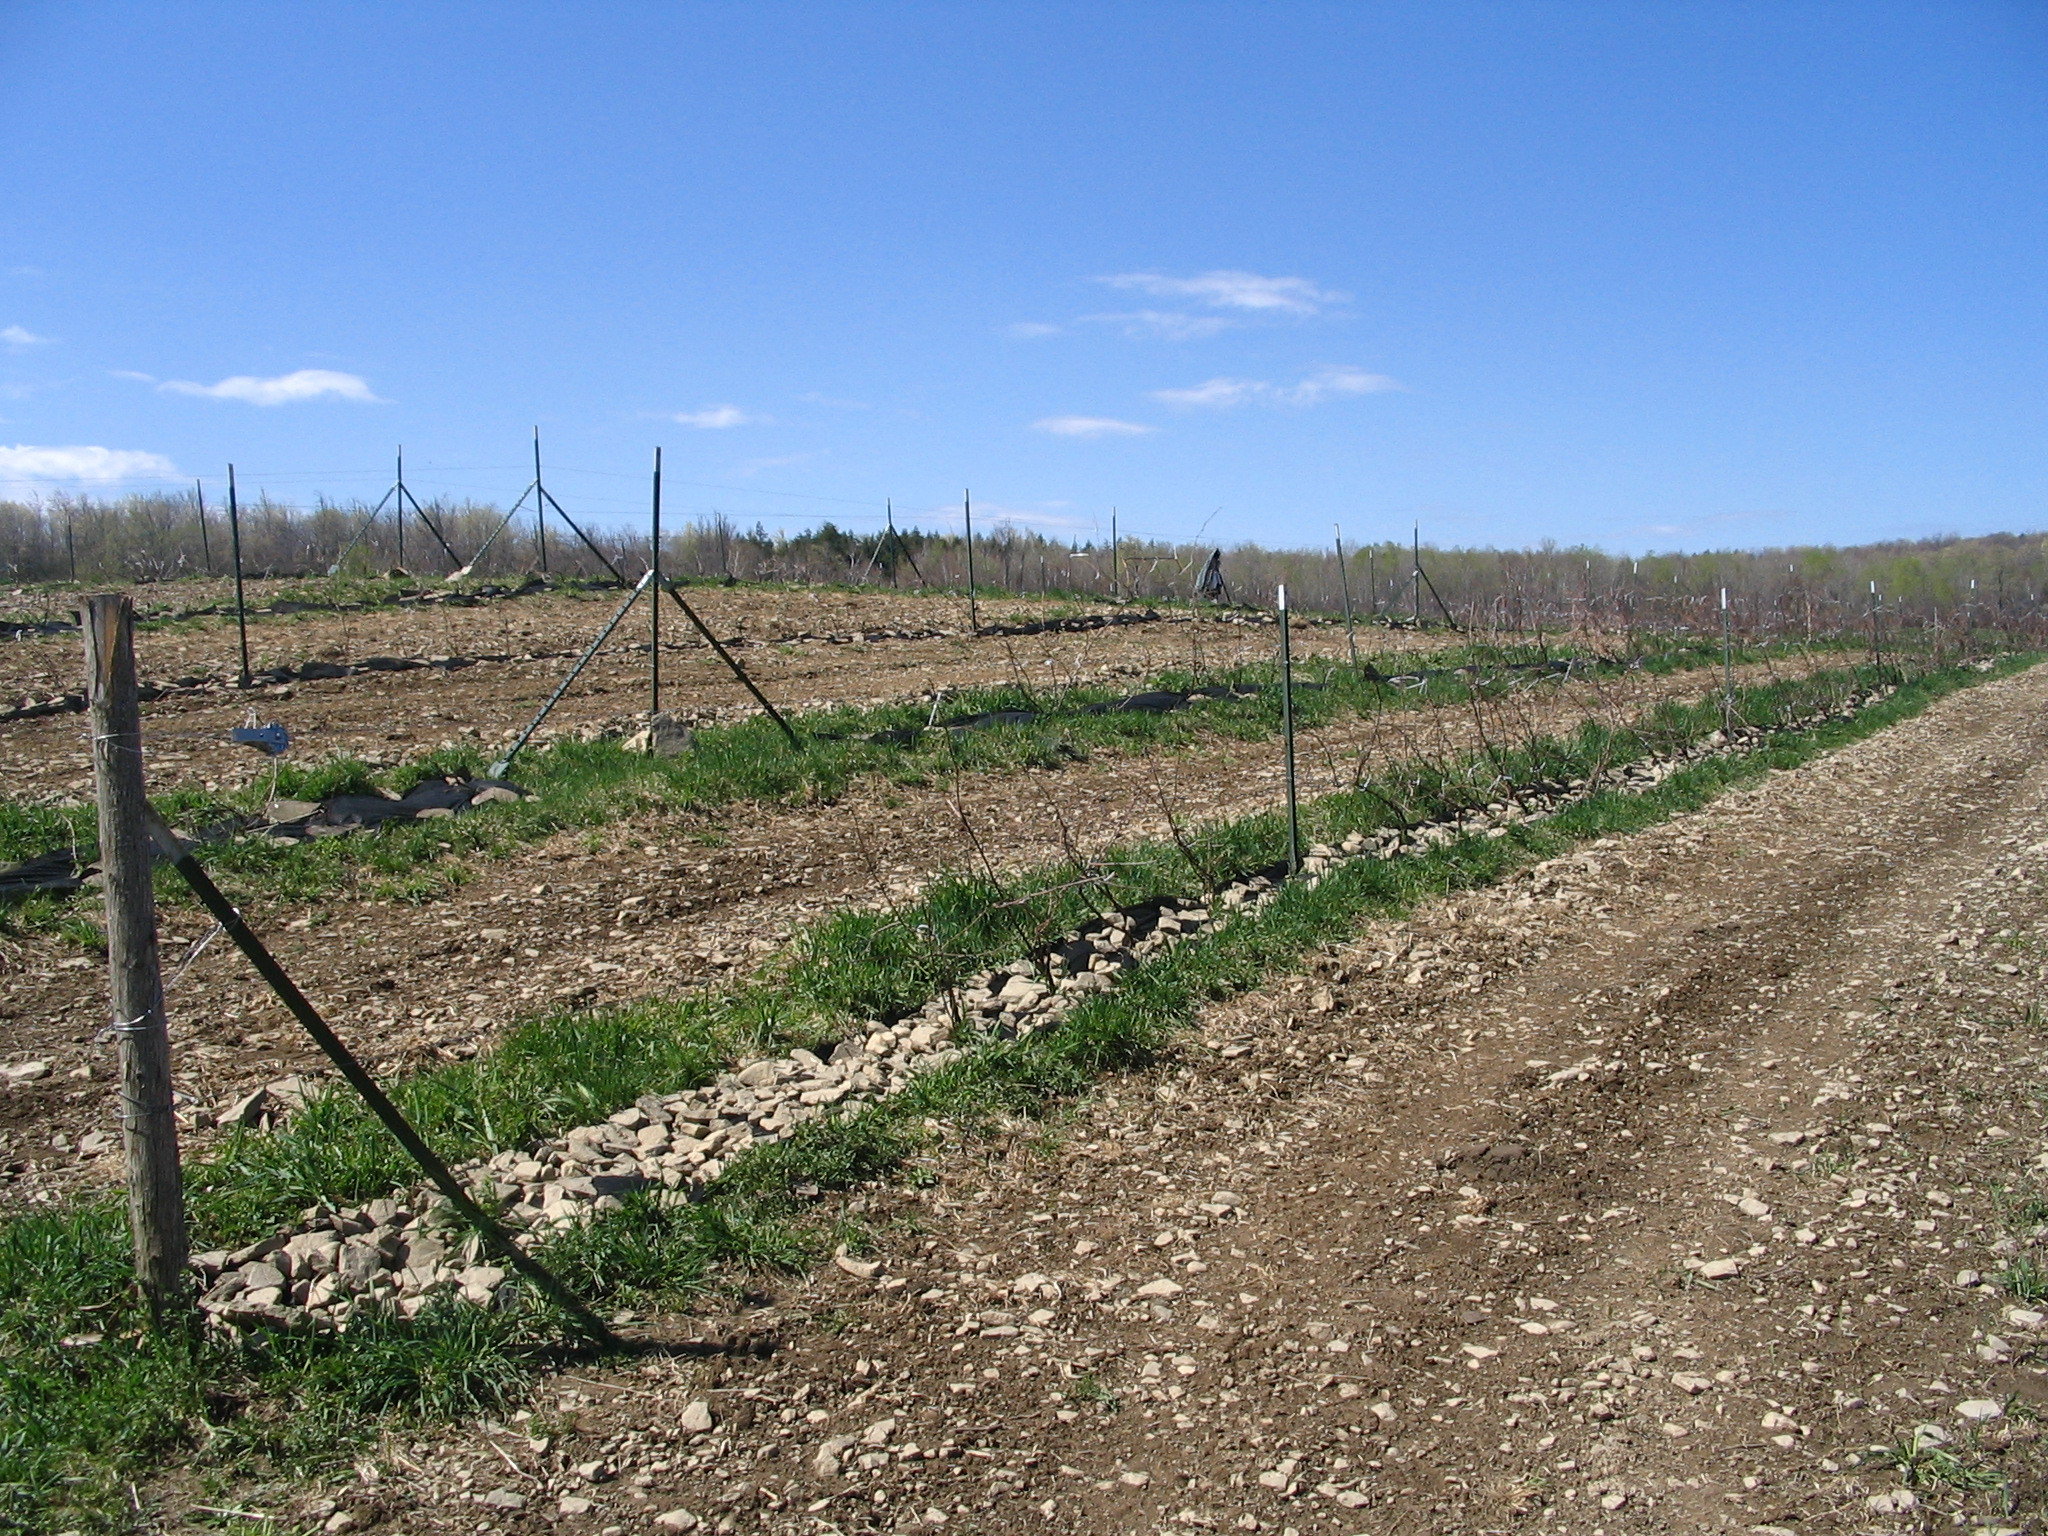 Photograph showing rows of newly planted grape vines.